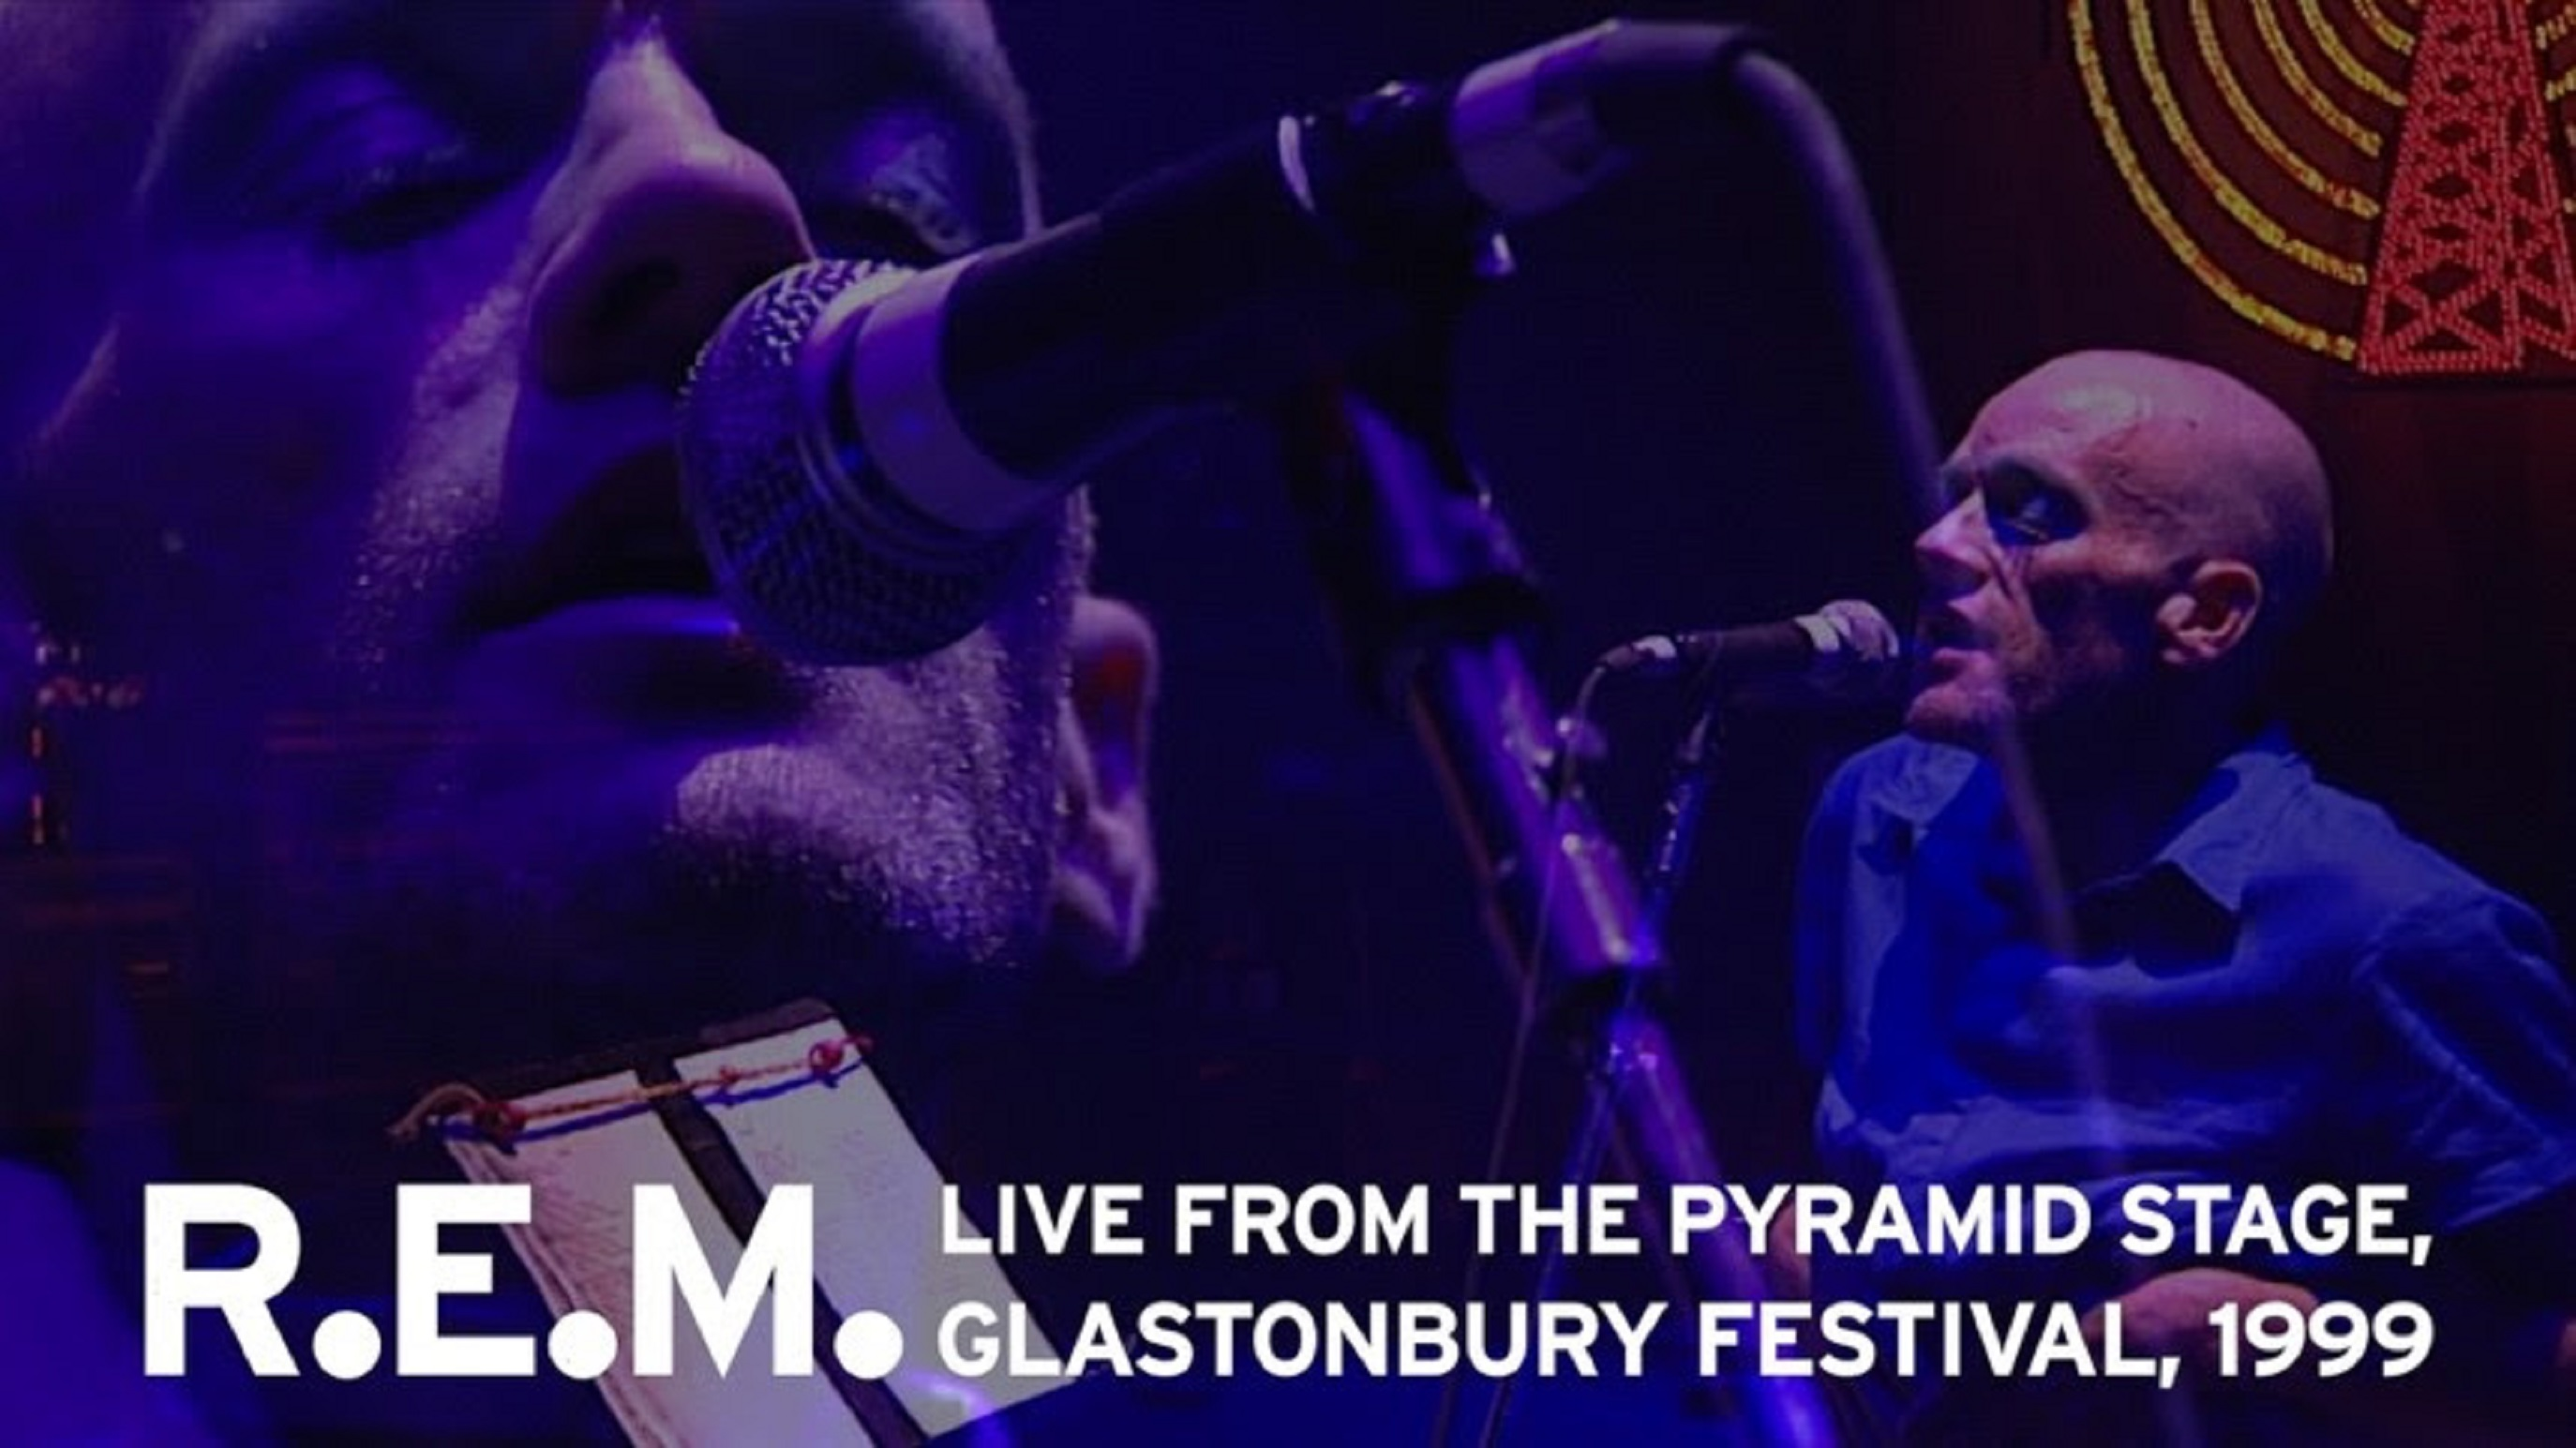 R.E.M. to premiere broadcast of legendary Glastonbury performance